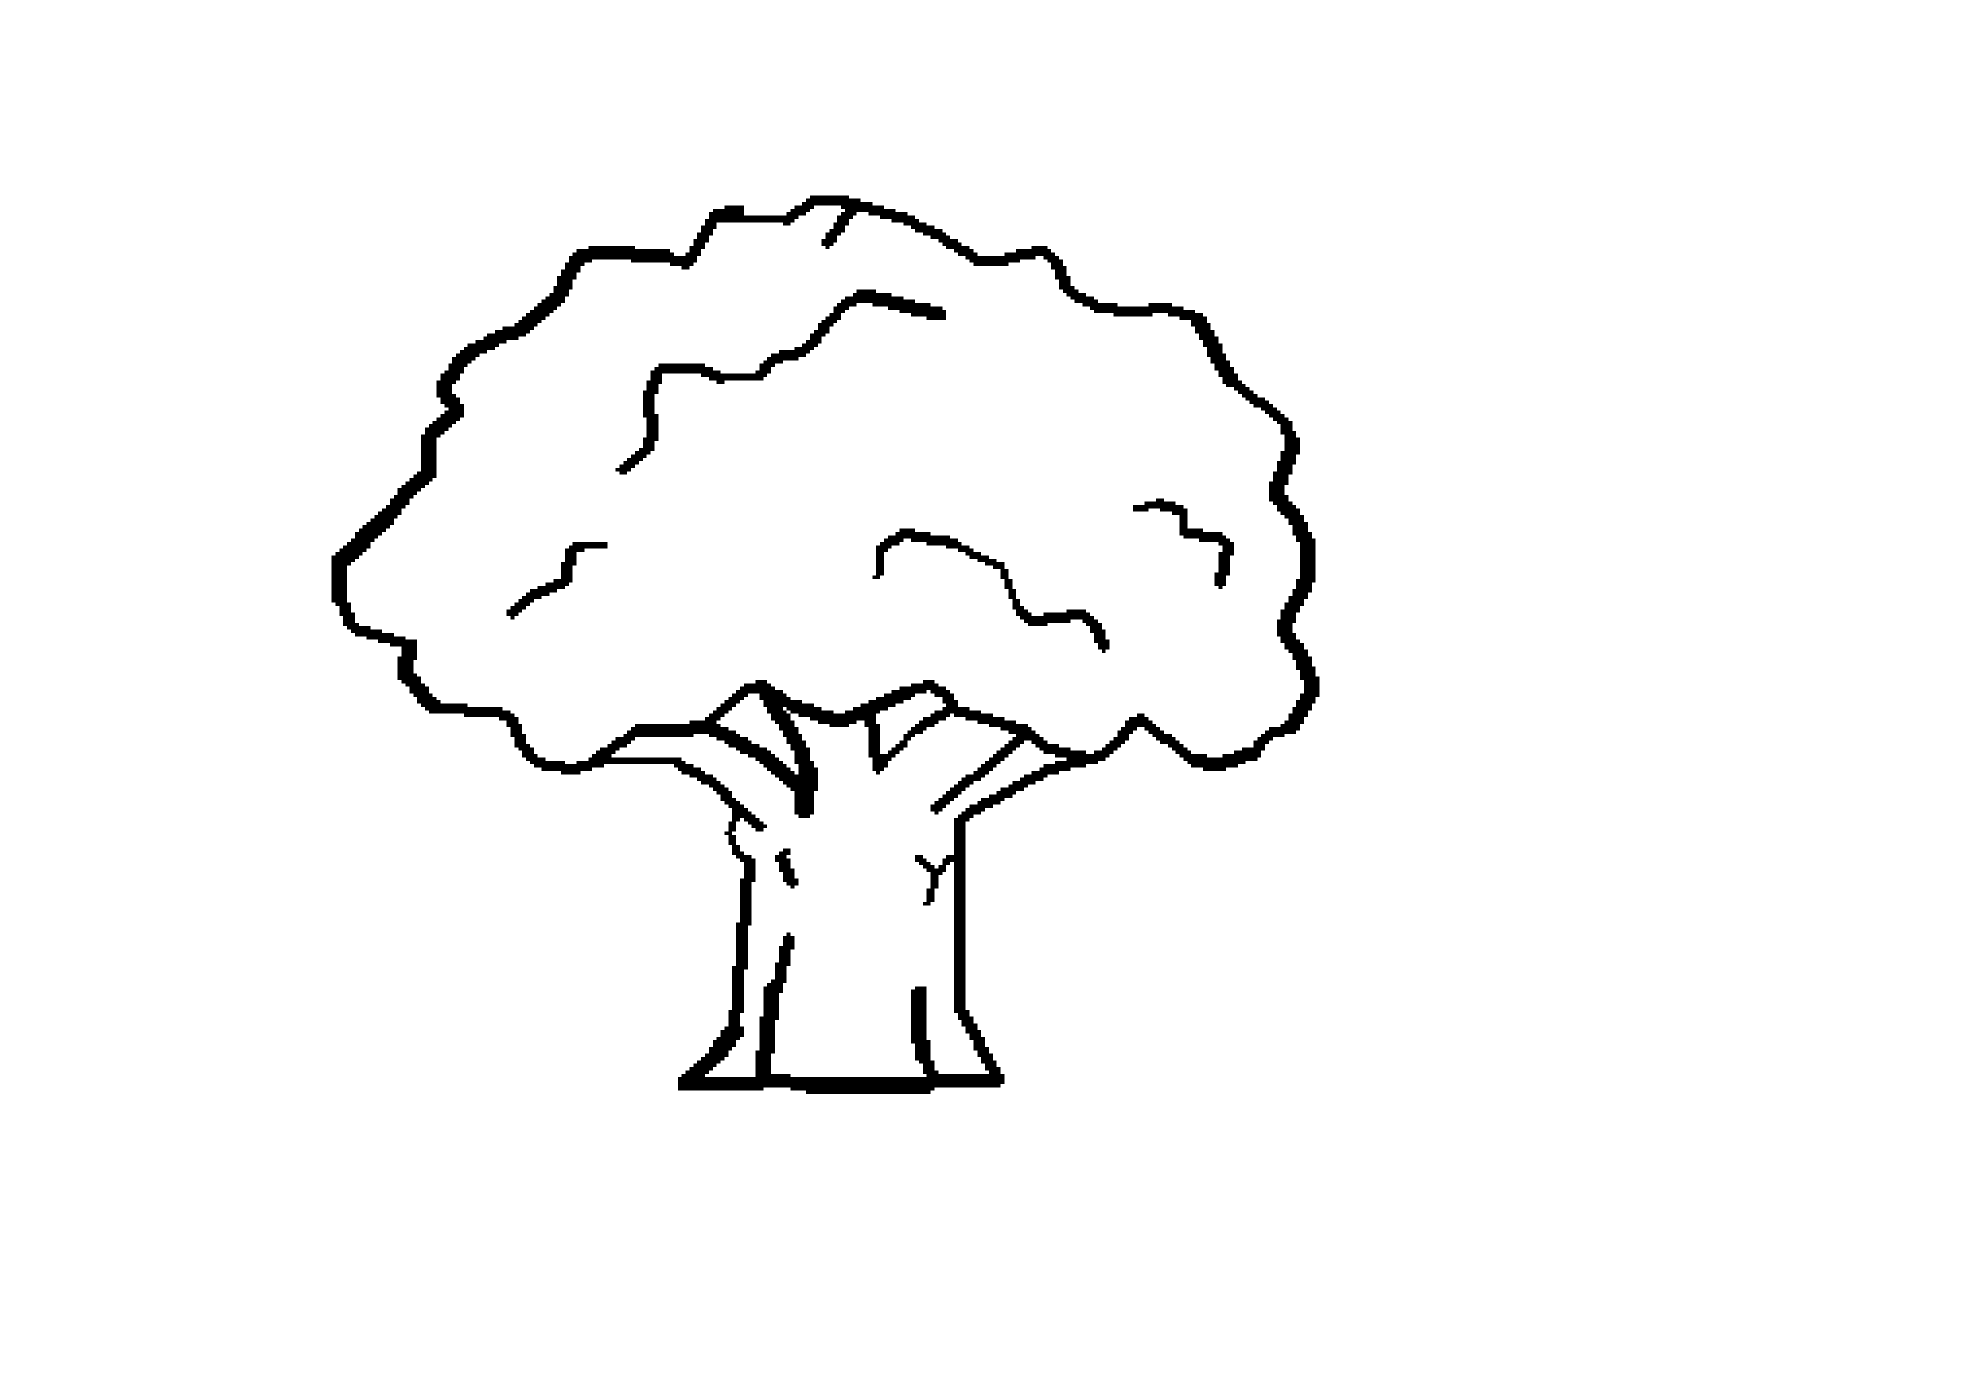 Tree Black White Line Art Coloring Book Colouring October 2011